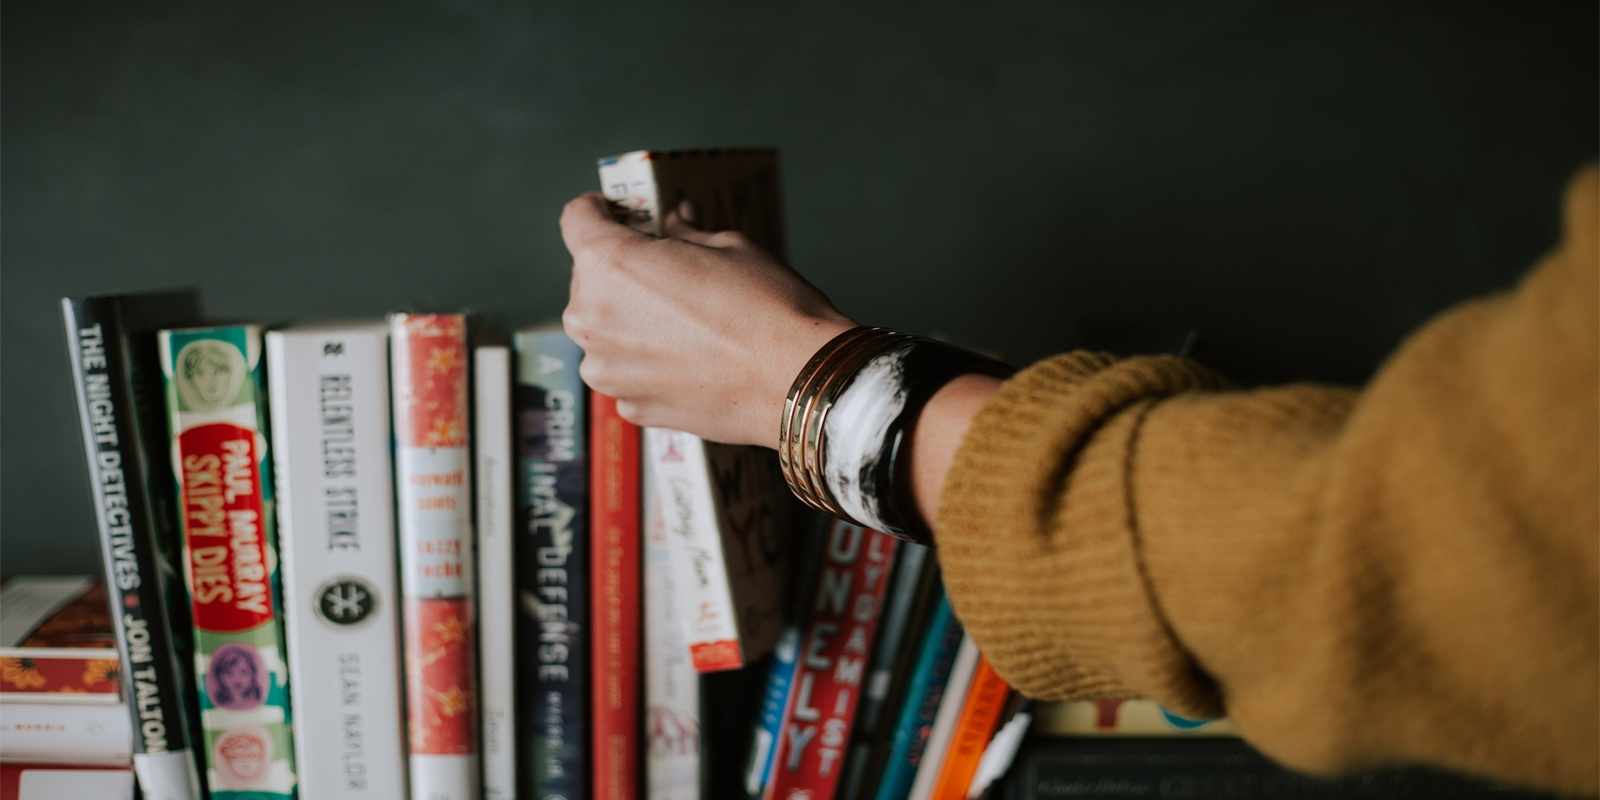 23 Bestselling Books That Will Inspire You To Change The World (Fall 2018)